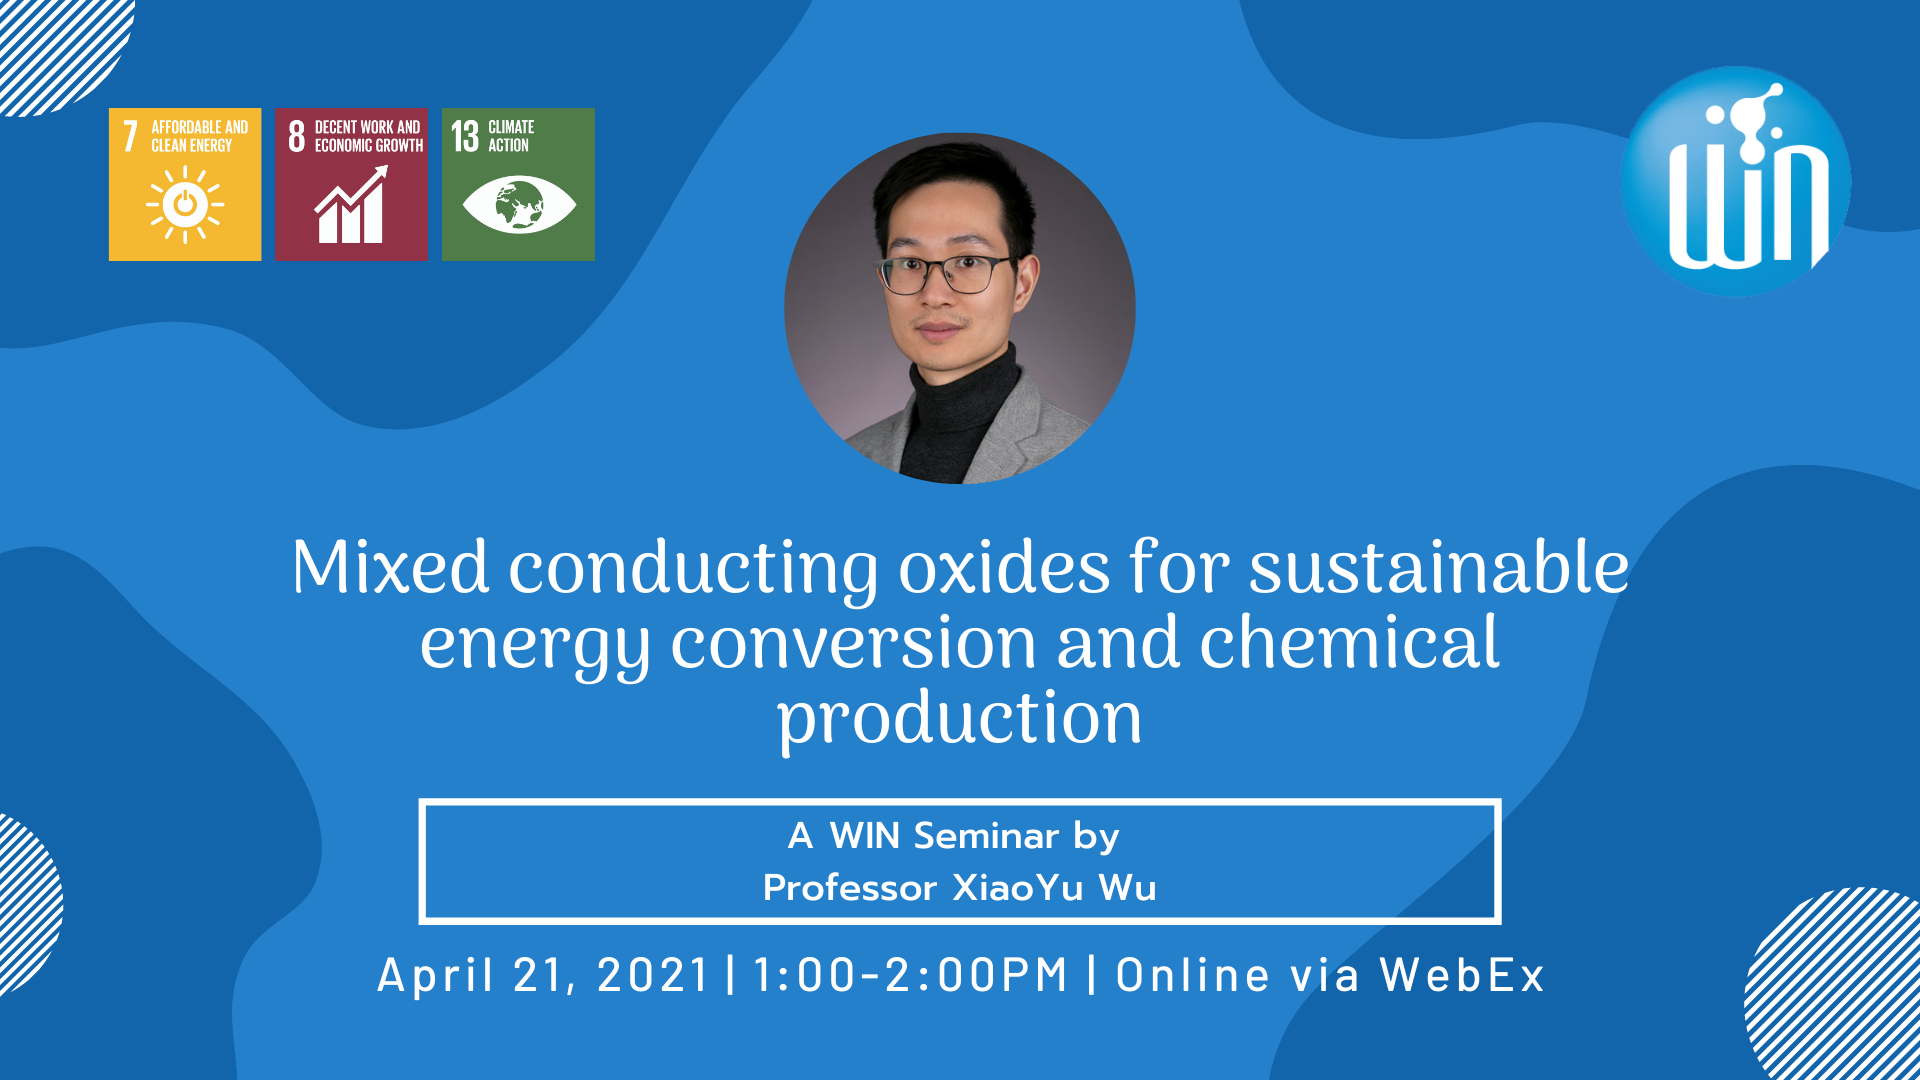 Mixed conducting oxides for sustainable energy conversion and chemical production a WIN seminar by professor XiaoYu Wu